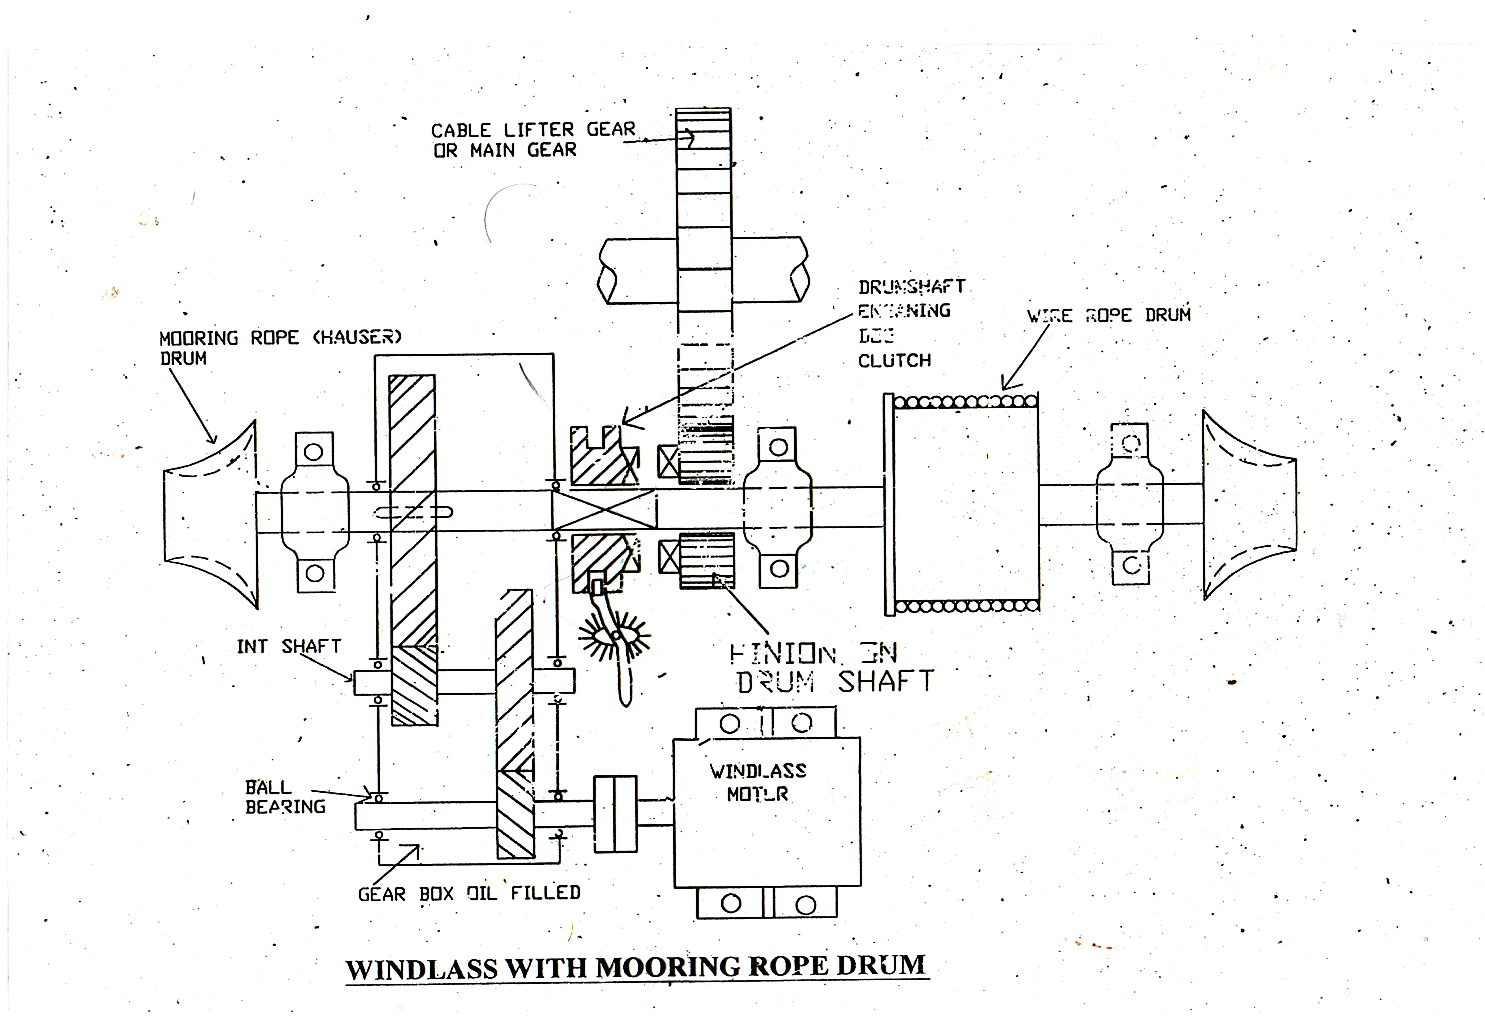 Hydraulic Brake System Diagram on 1989 Chevy Truck Clutch